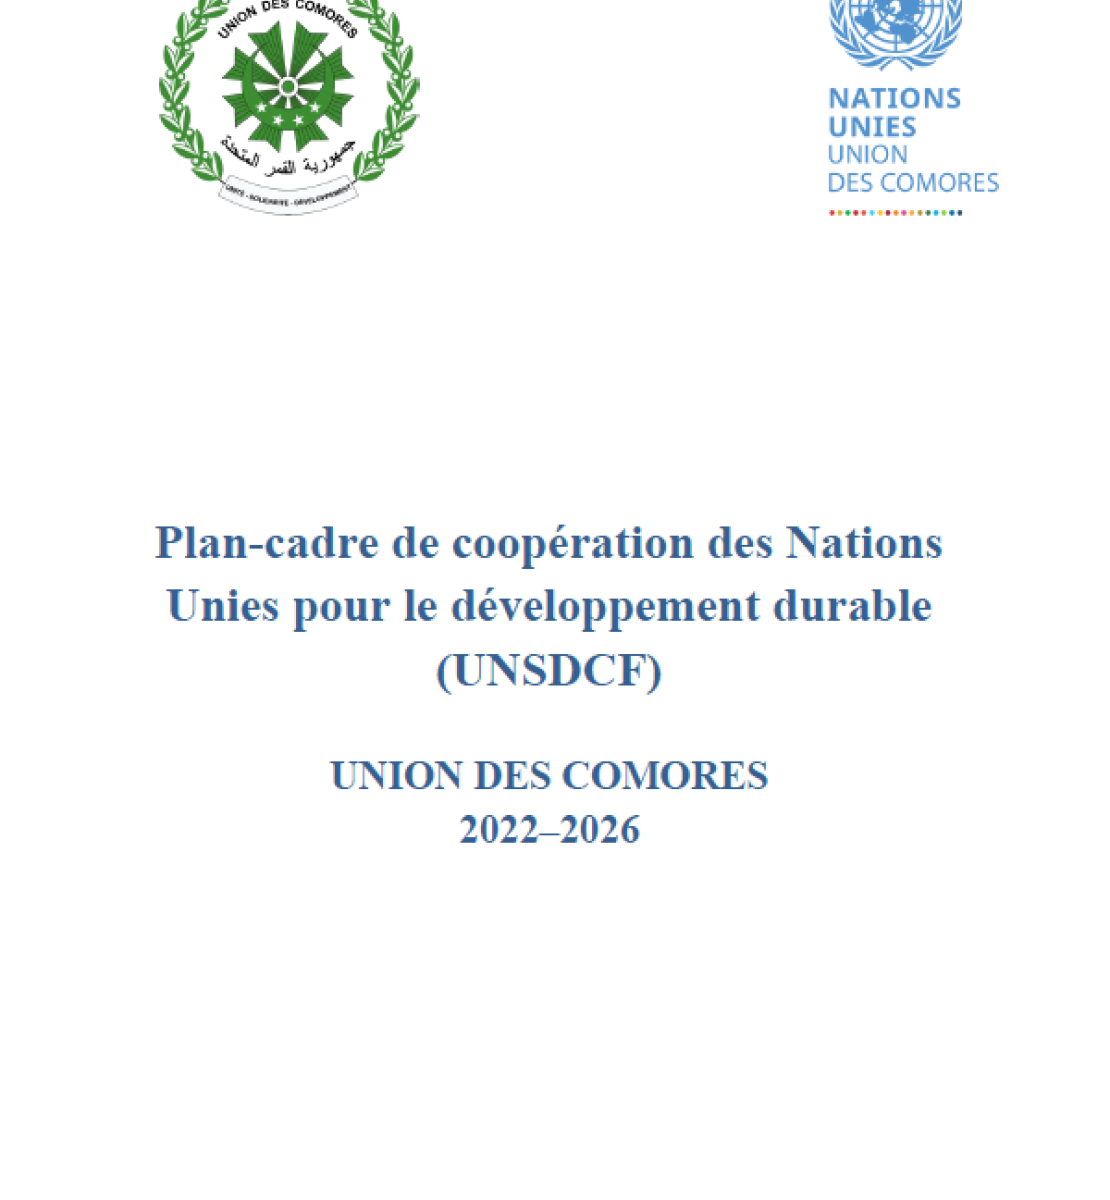 This is a document with a white background and blue text.  The government logo appears on the left and the UNCT logo to the top right.